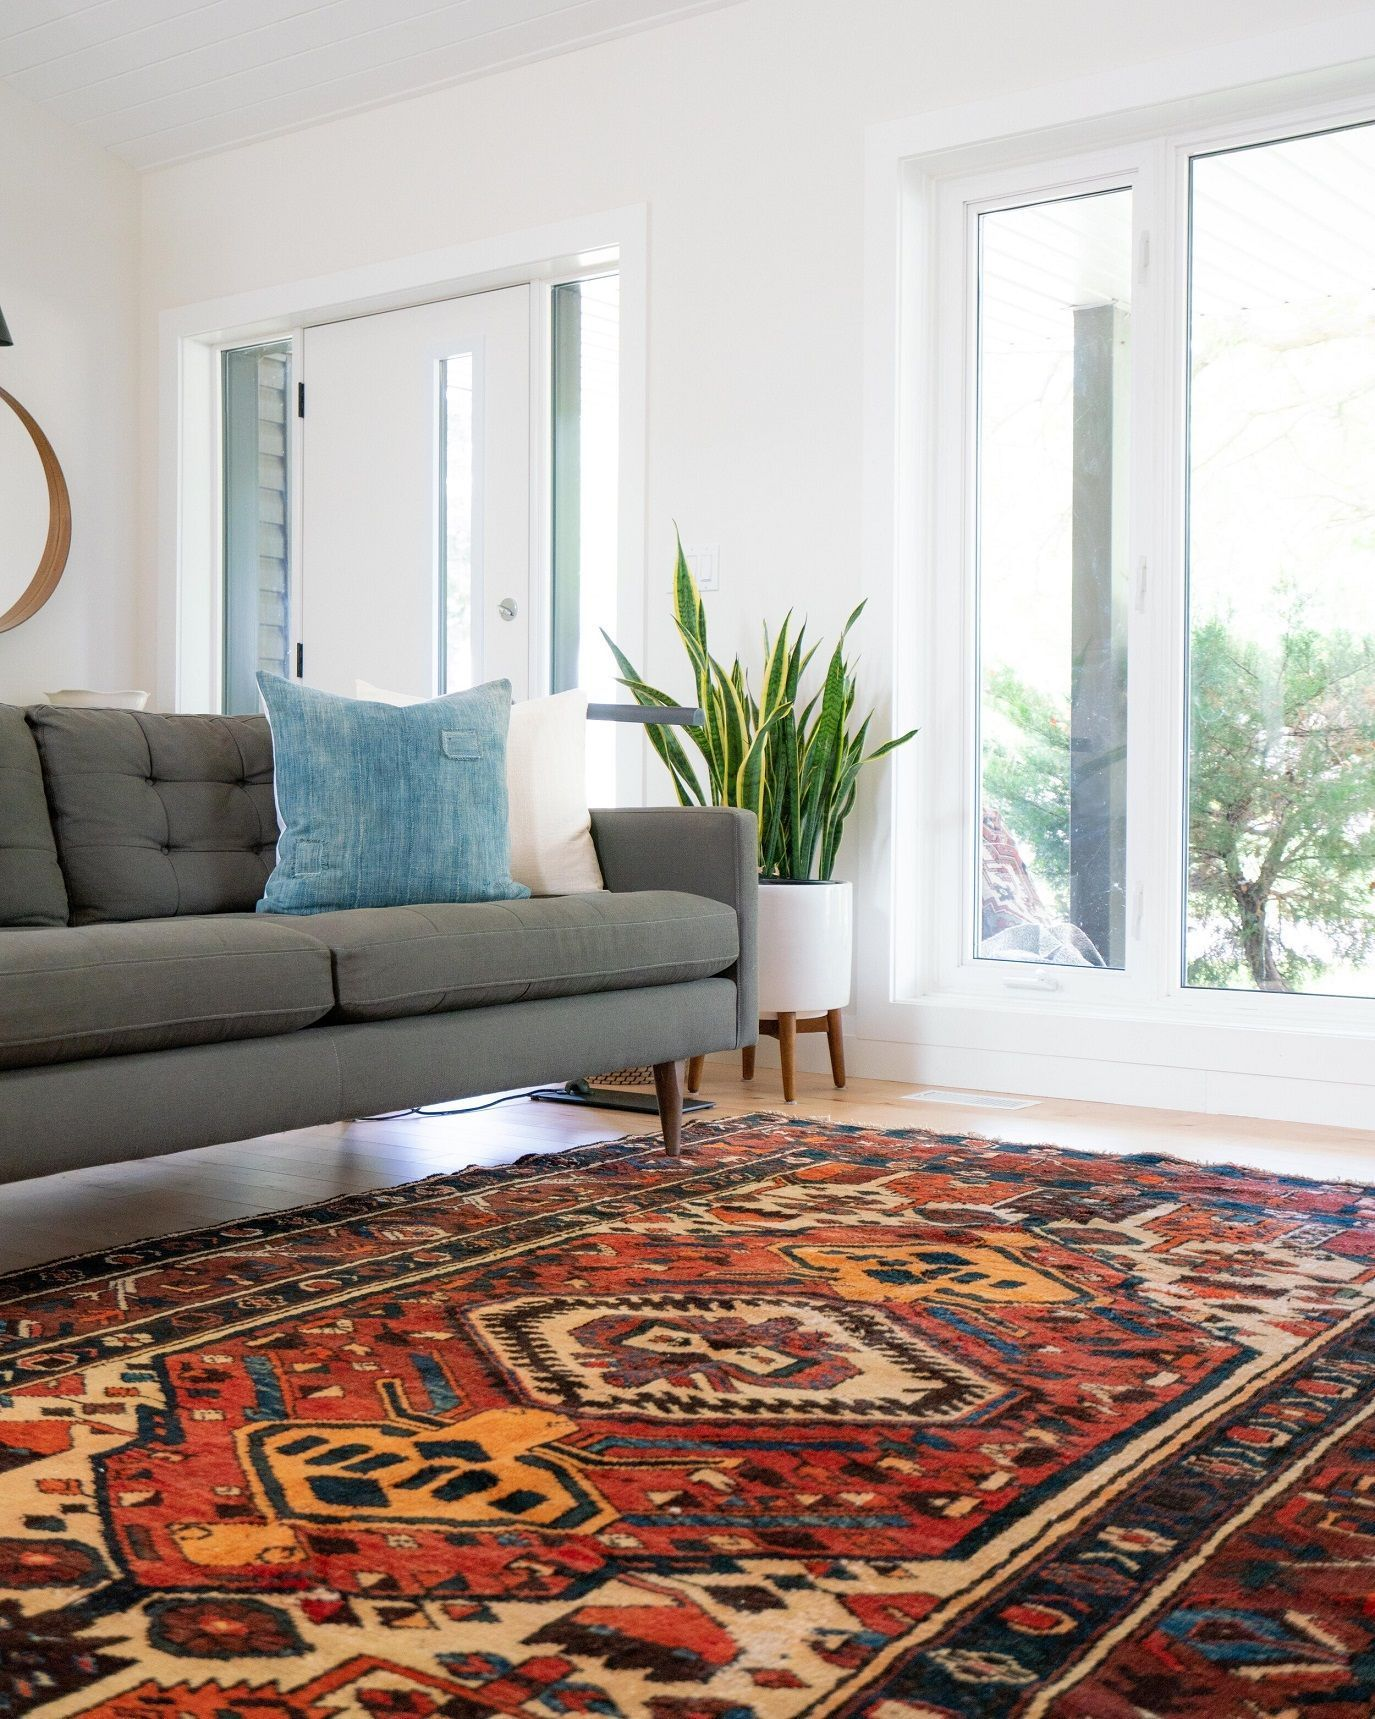 Rugs Can Introduce Colors And Patterns Capture The Essence Of A Particular Interior Style And Create A In 2020 Living Room Area Rugs Area Room Rugs Minimalist Decor